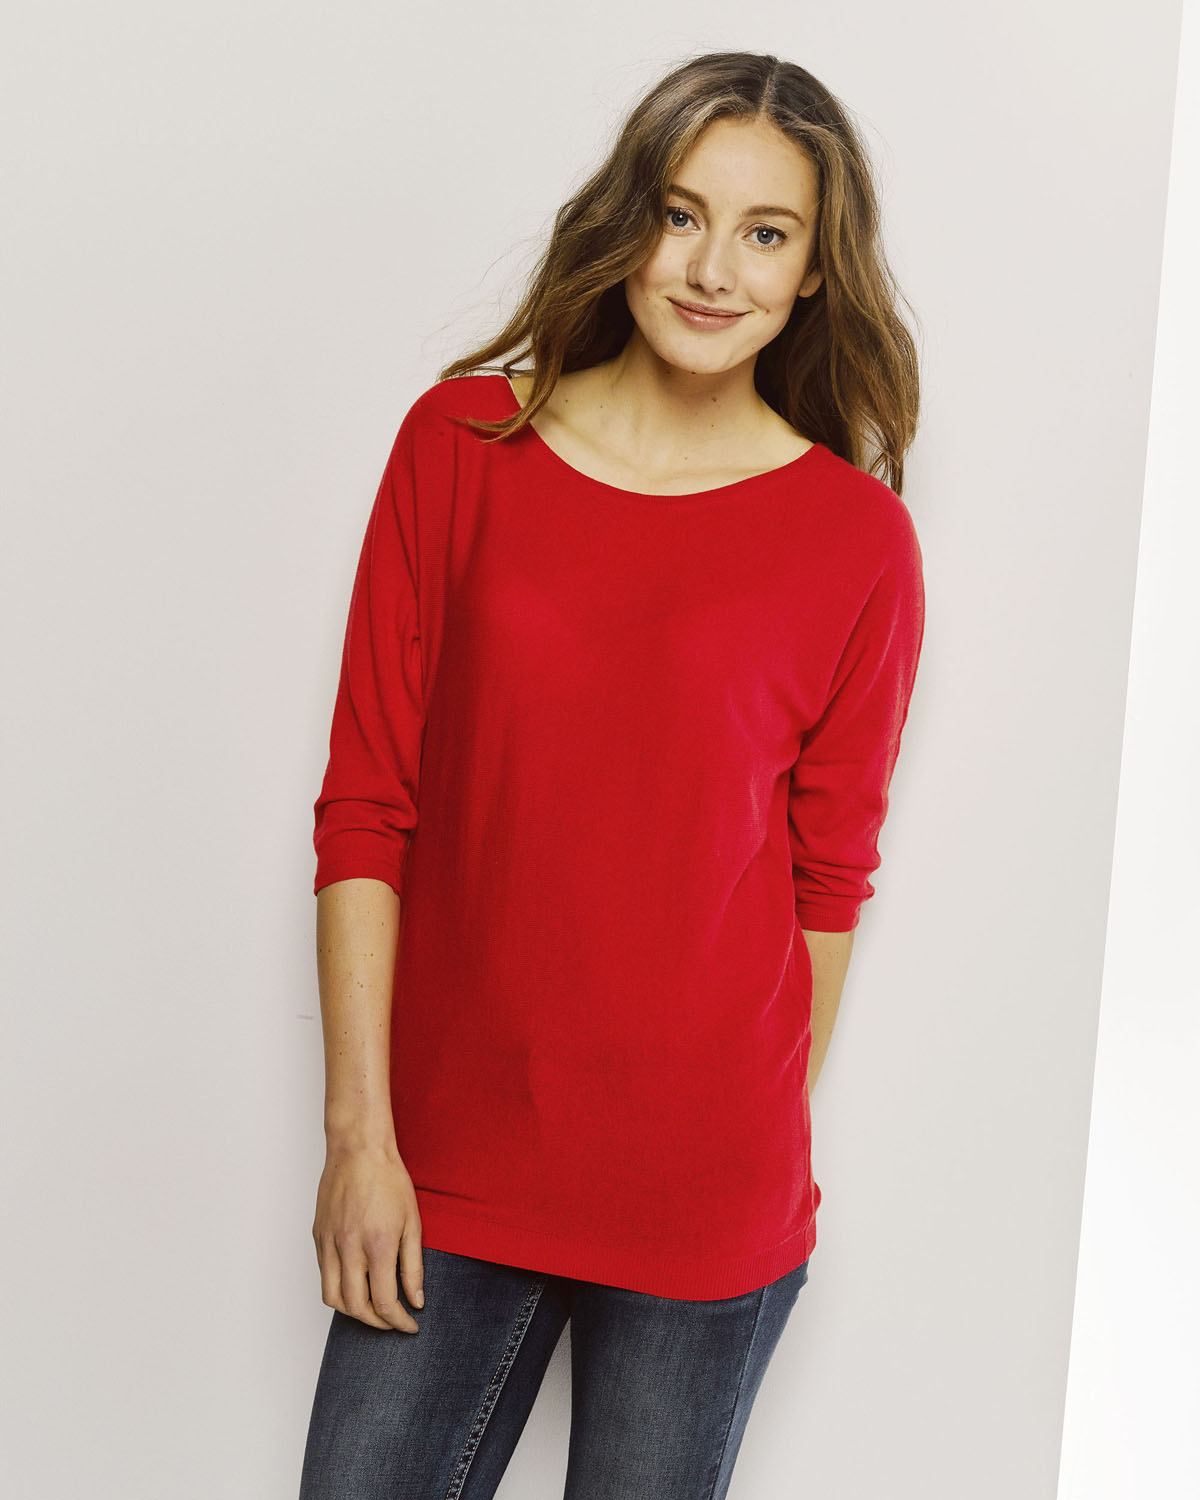 Dames Trui Rood.Dames Oversized Knit Trui 78671911 We Fashion